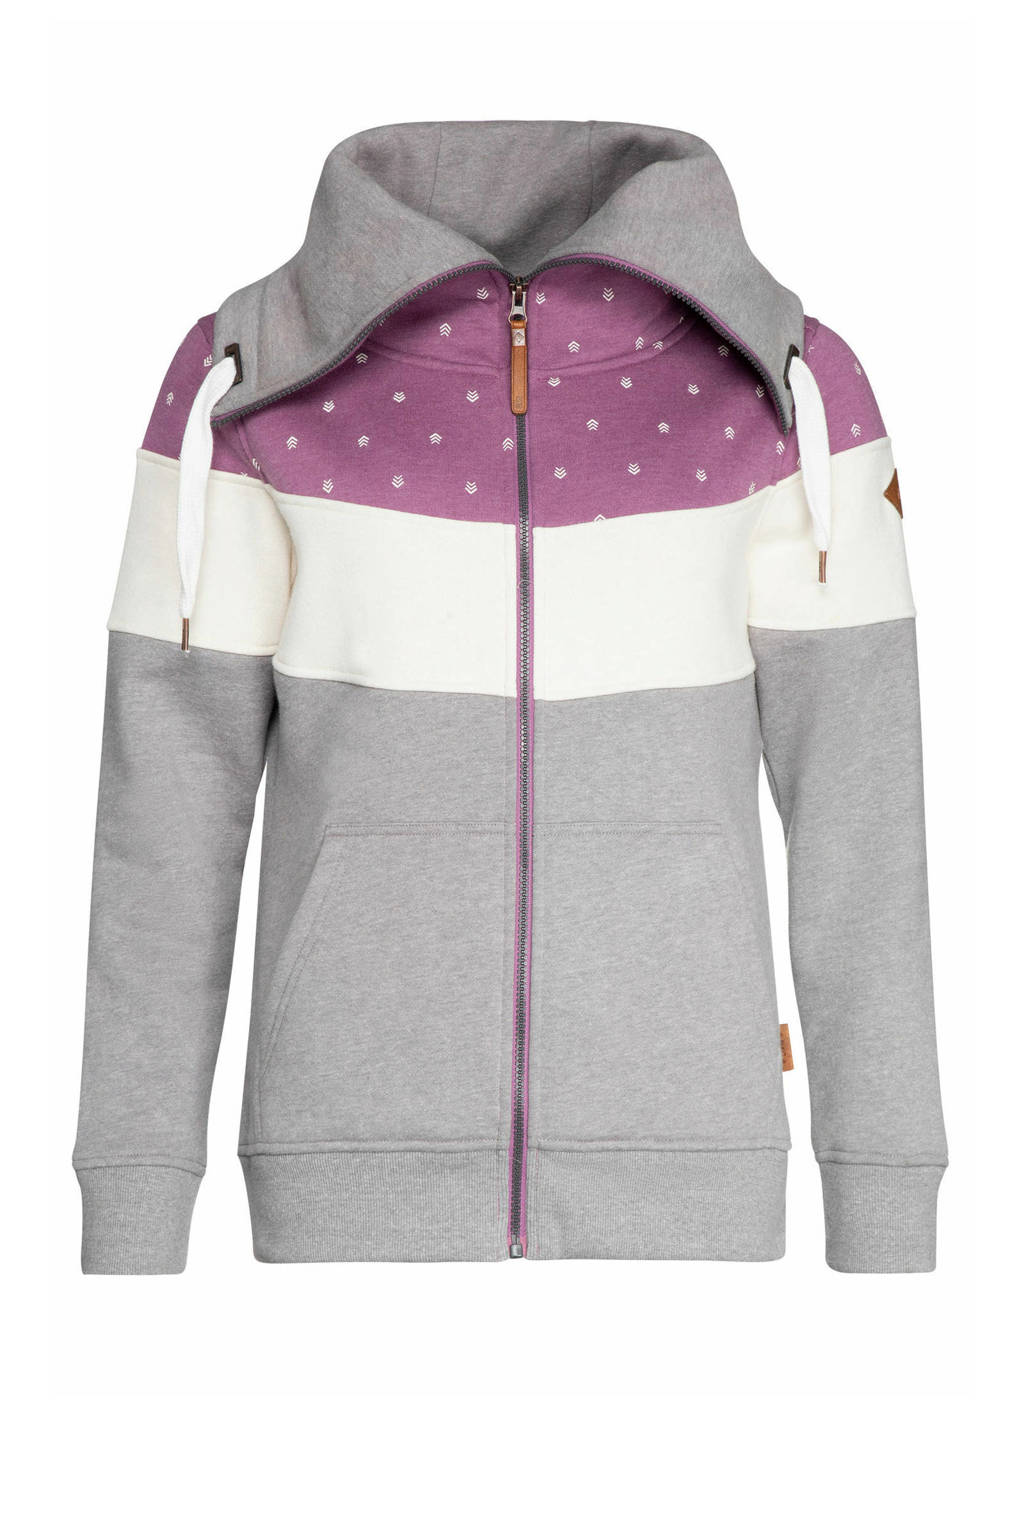 NXG by Protest Sweatvest grijs/wit/paars, Very Grape